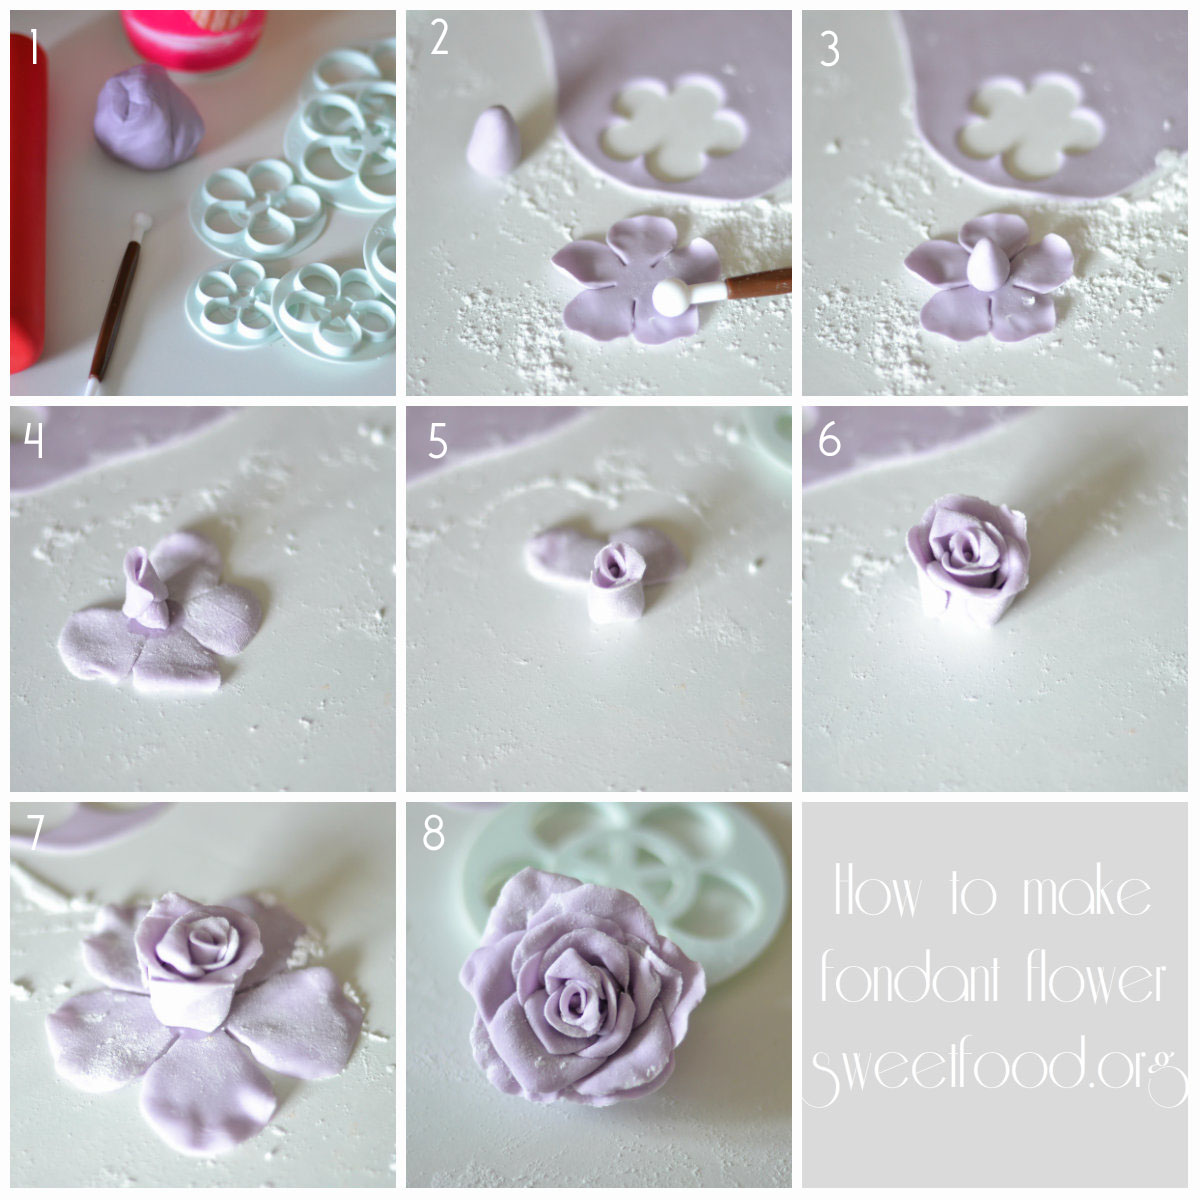 fondant flower how to